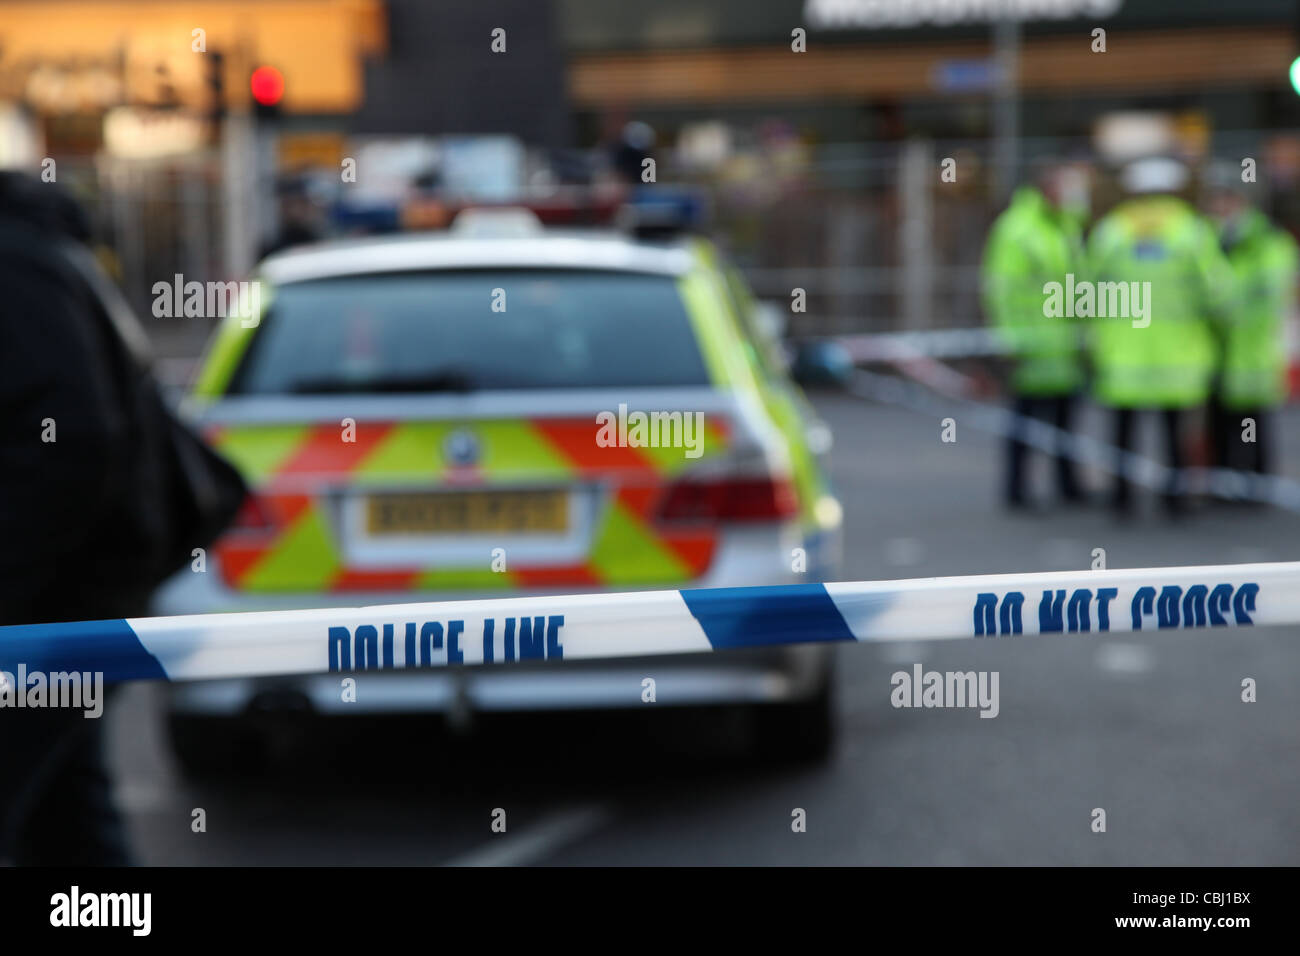 Police line with vehicle and crime investigation scene in background - Stock Image